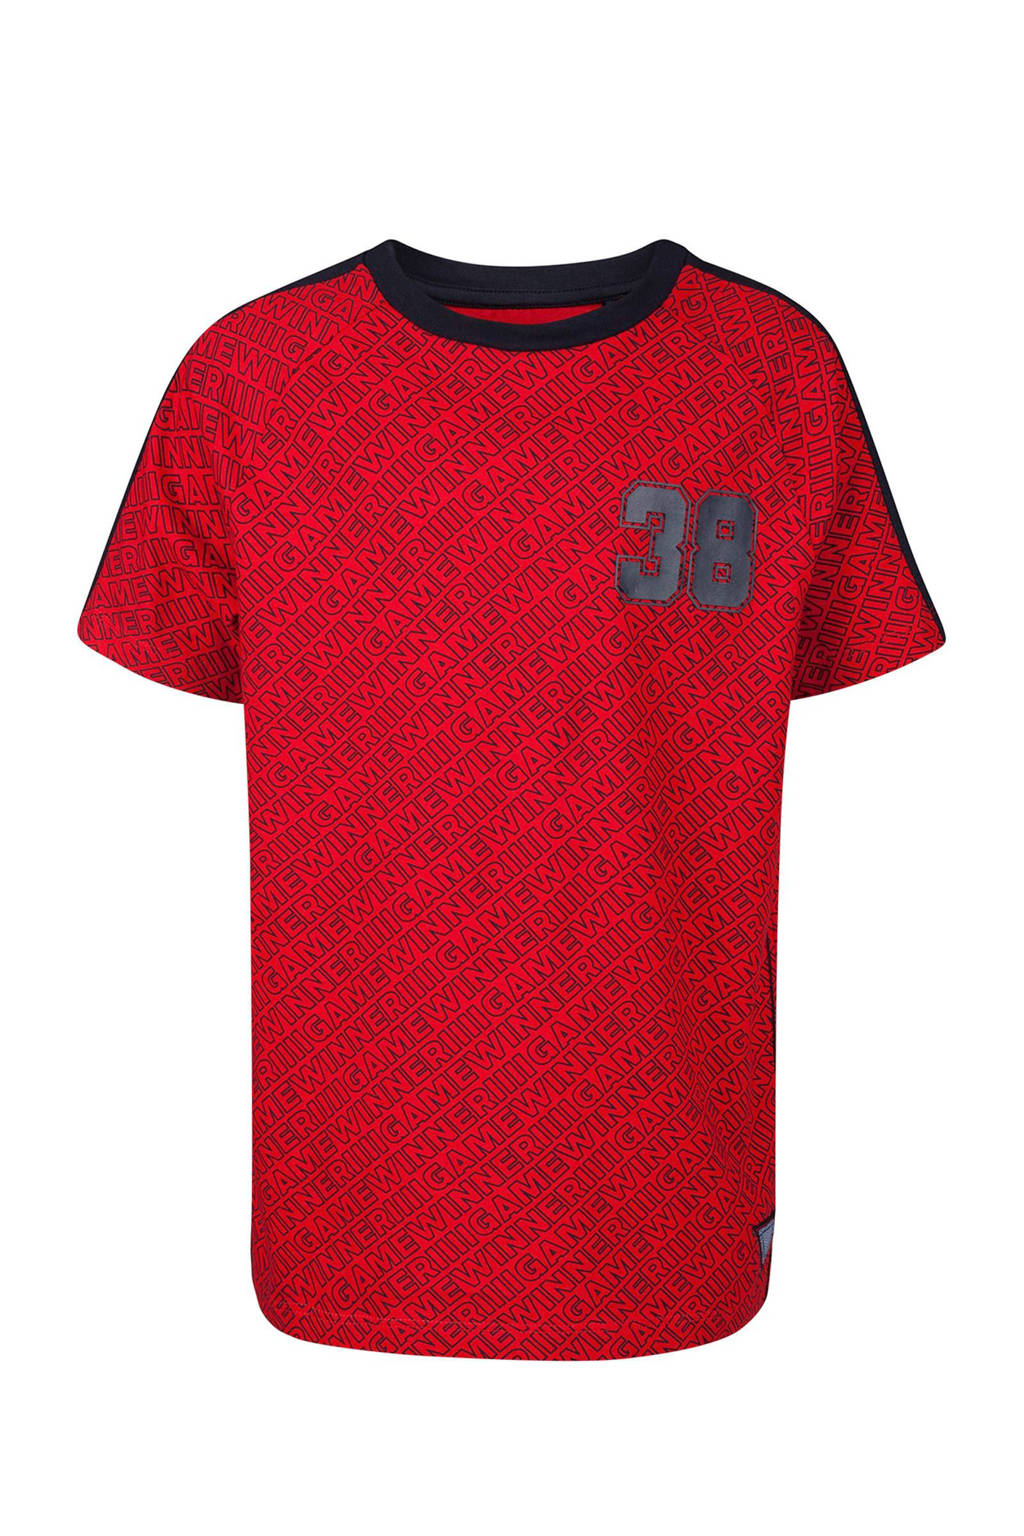 WE Fashion T-shirt met all over print rood, Rood